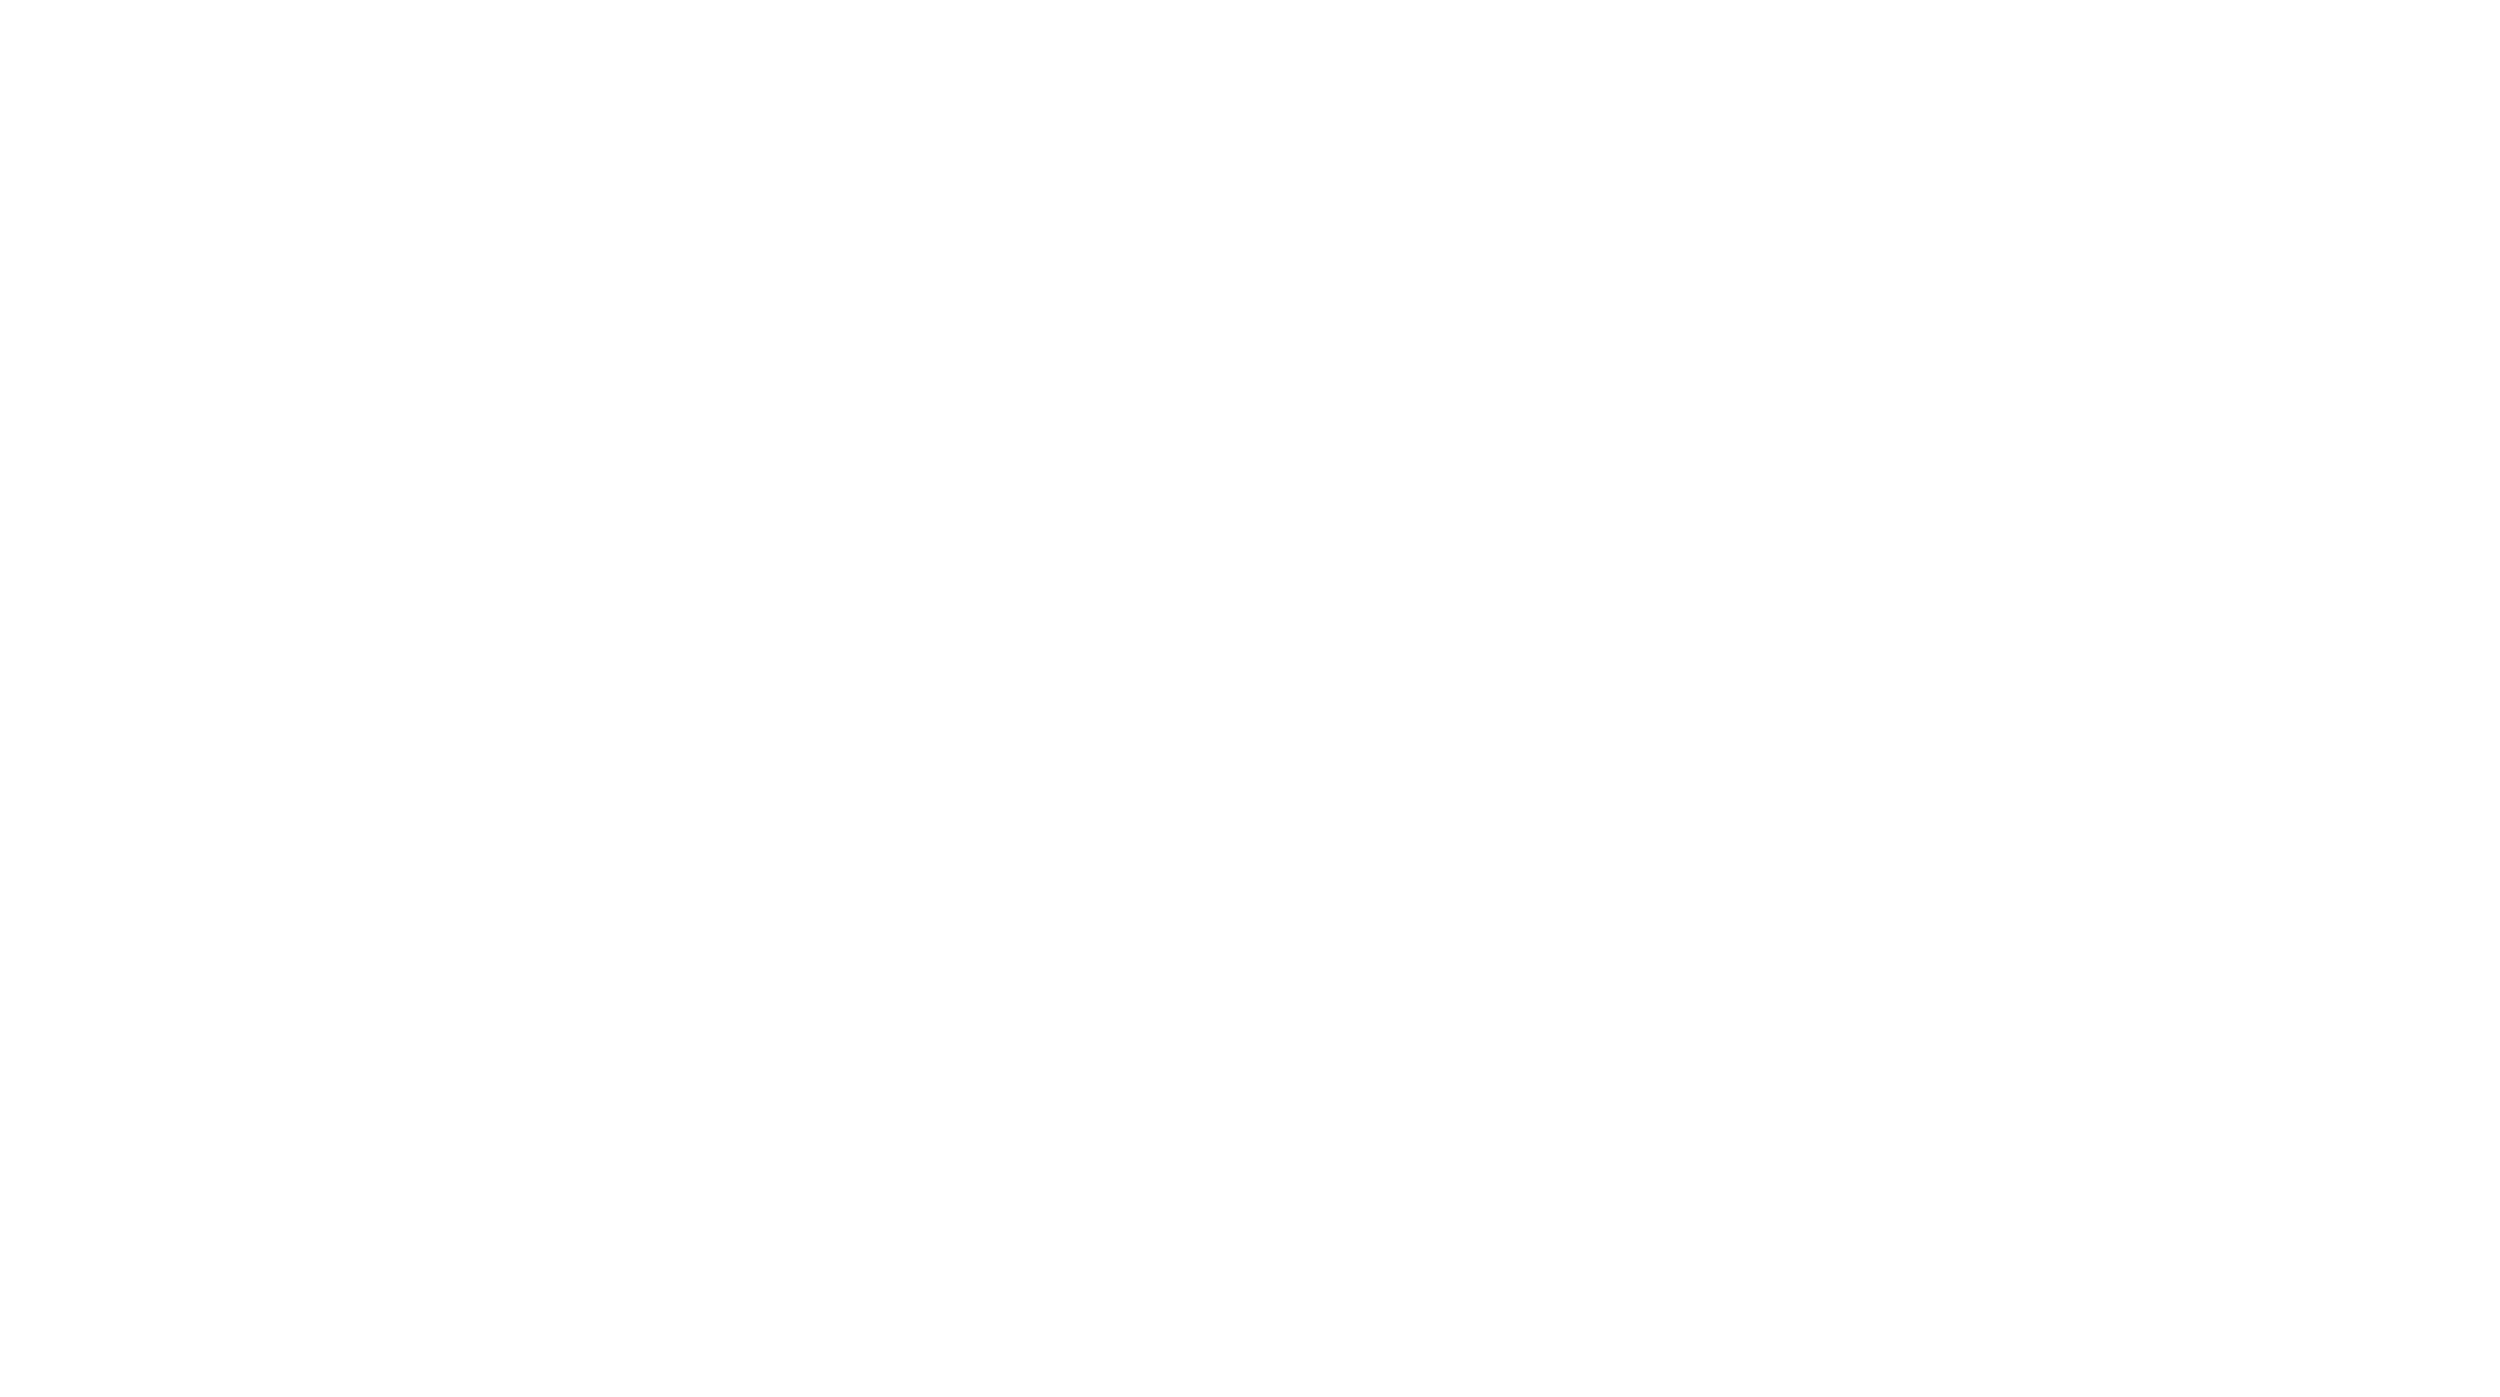 Empowerment Starts With You 2.png